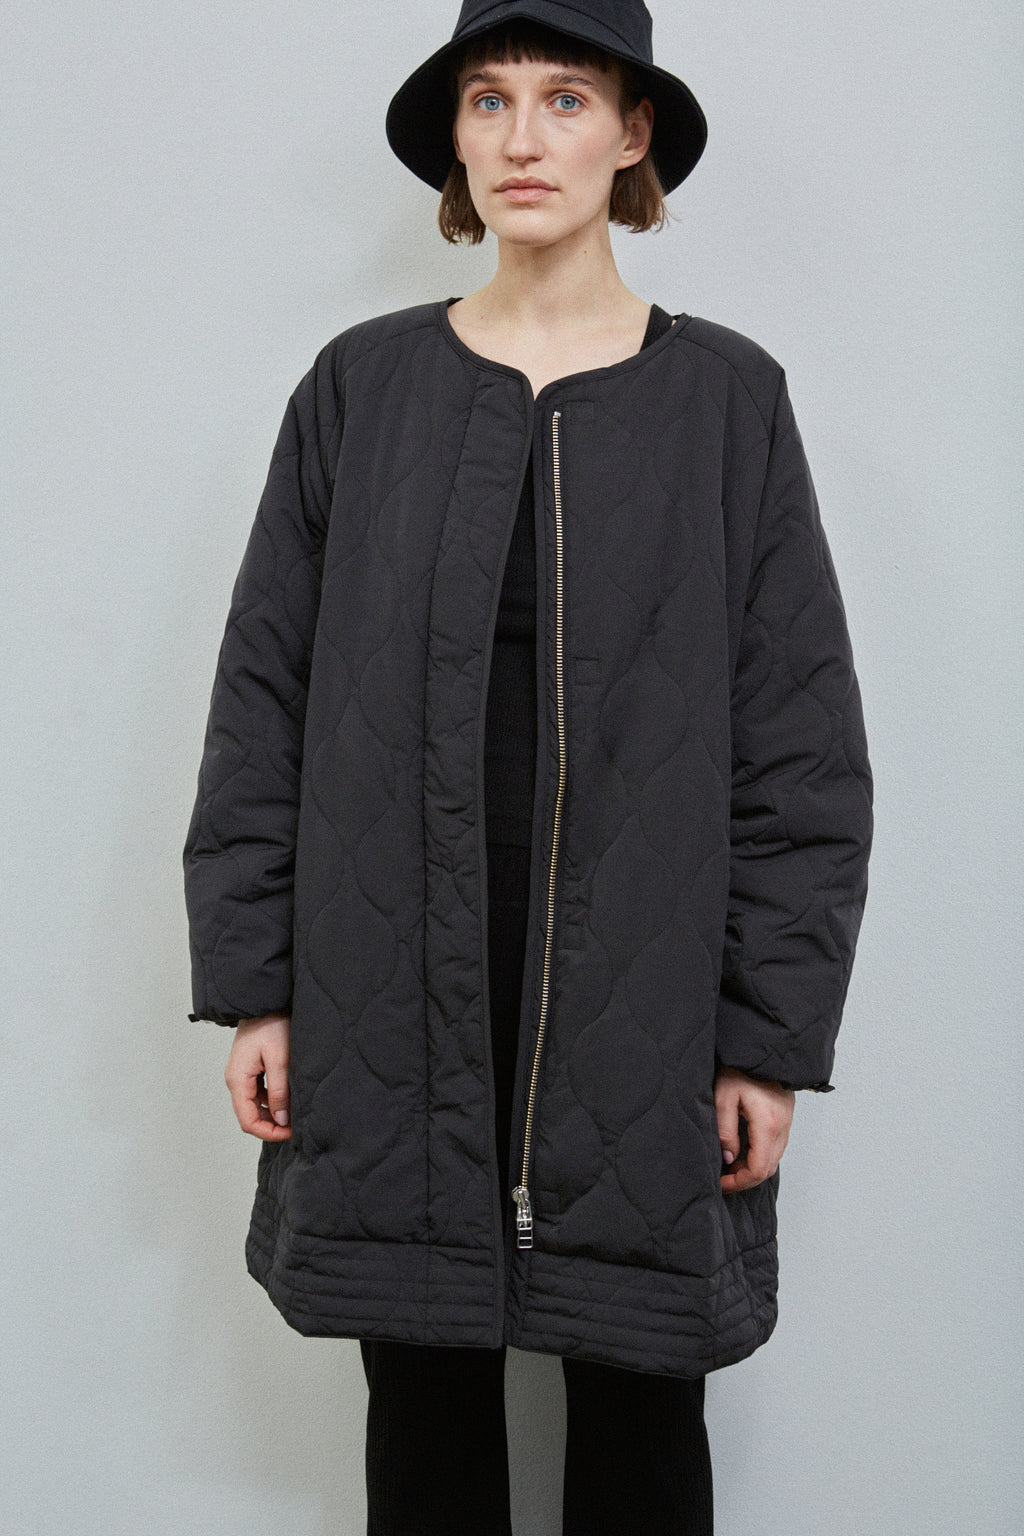 Akaroa Jacket by Embassy of Bricks and Logs